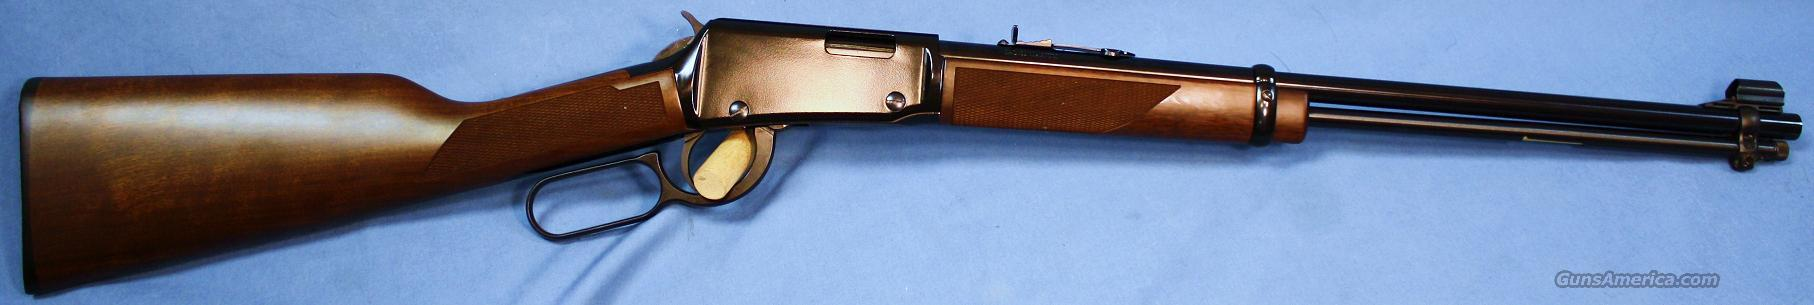 Henry Rifle Co. Lever Action Rifle .22 Magnum  Guns > Rifles > Henry Rifle Company